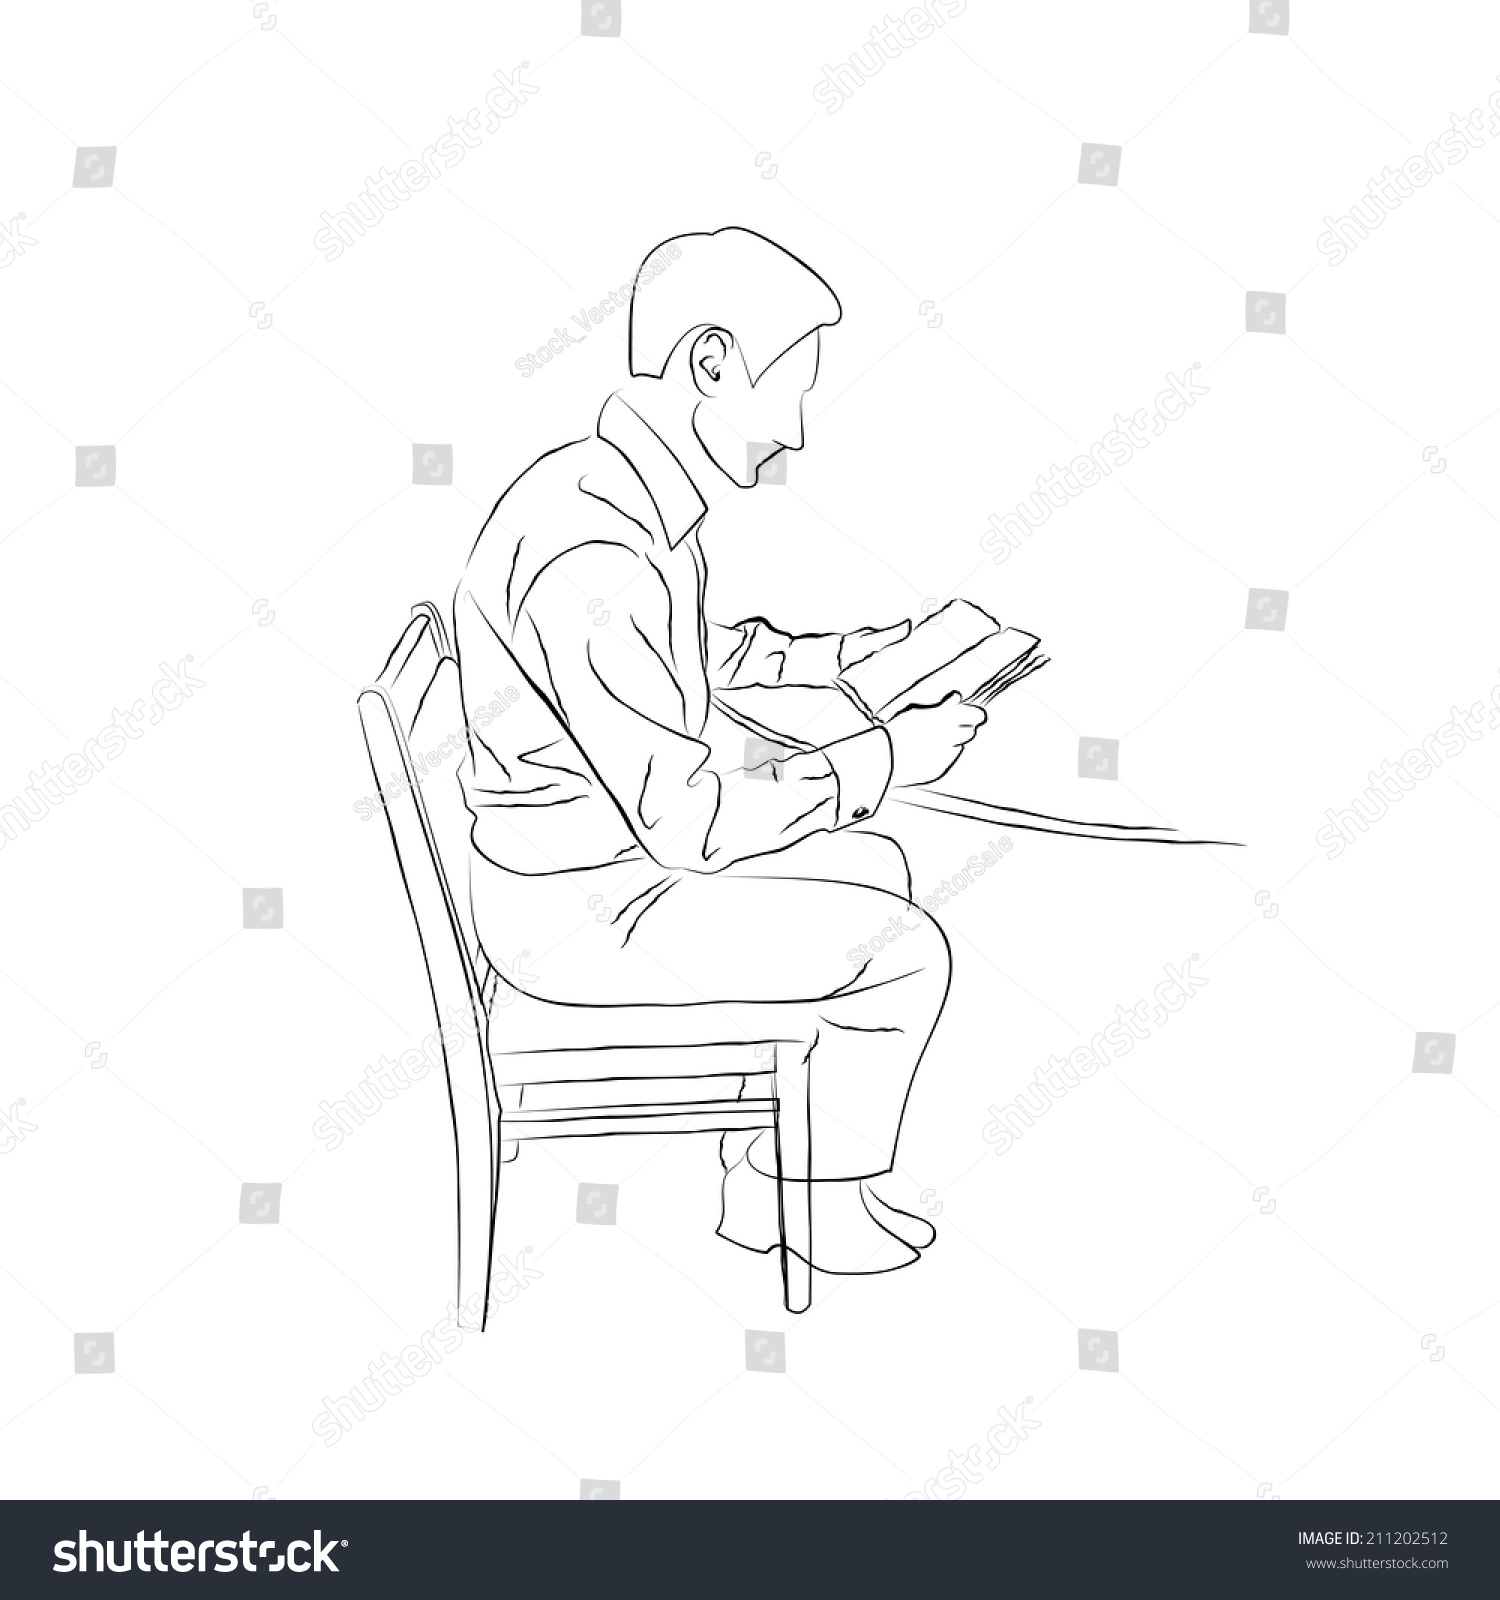 Man sitting in chair drawing - Sketch Doodle Man Sitting At The Table On A Chair And Reading A Book